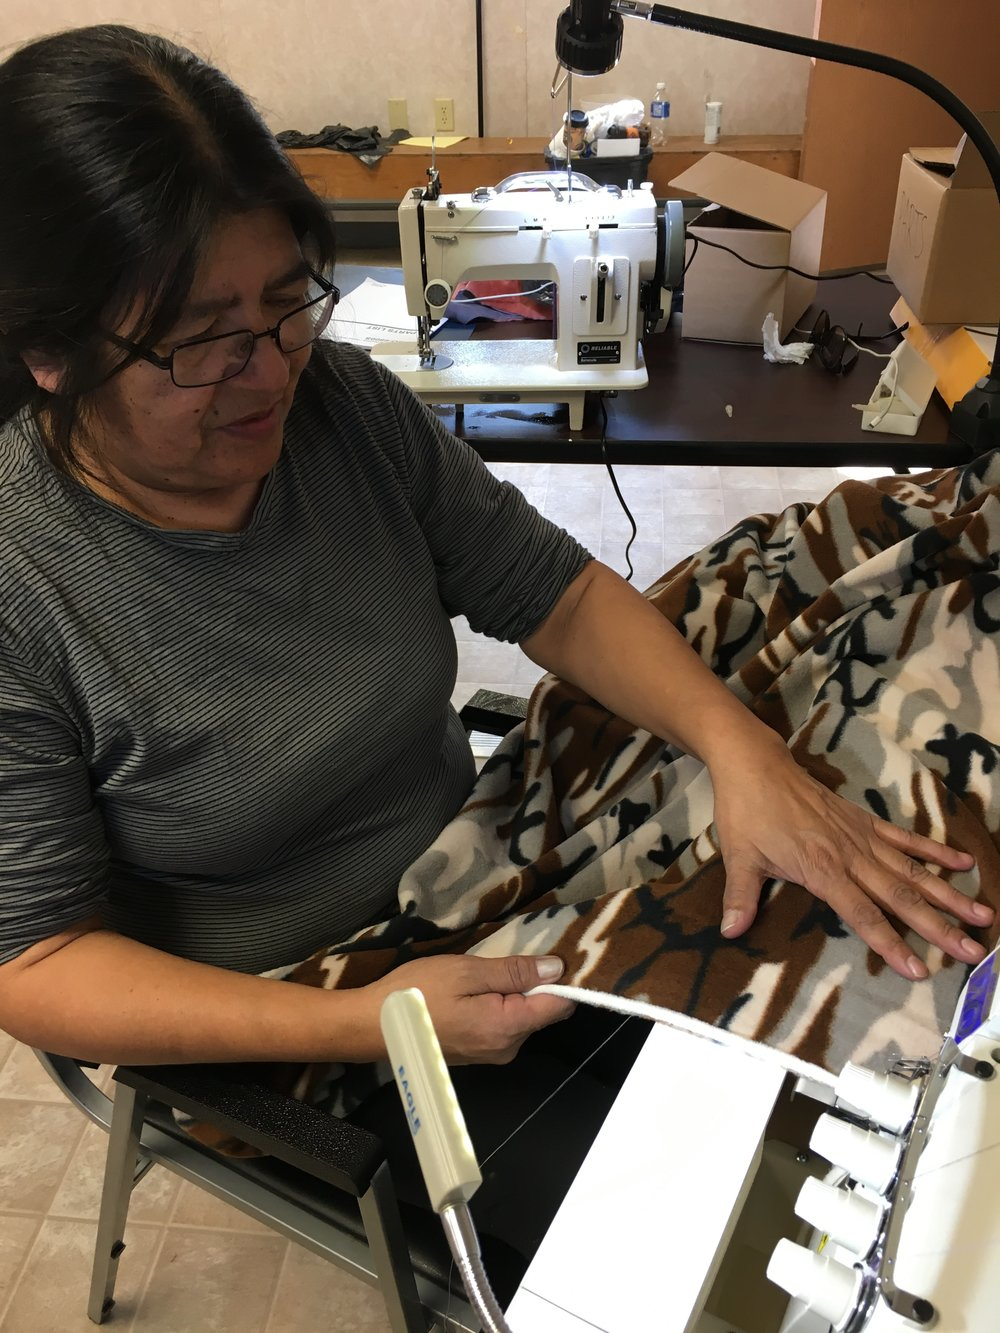 Daisy Slipperjack was frightened to use the machines, but overcame her fear and she will now help others to learn how to use this brand new Juki 4 Thread Serger. Go Daisy!